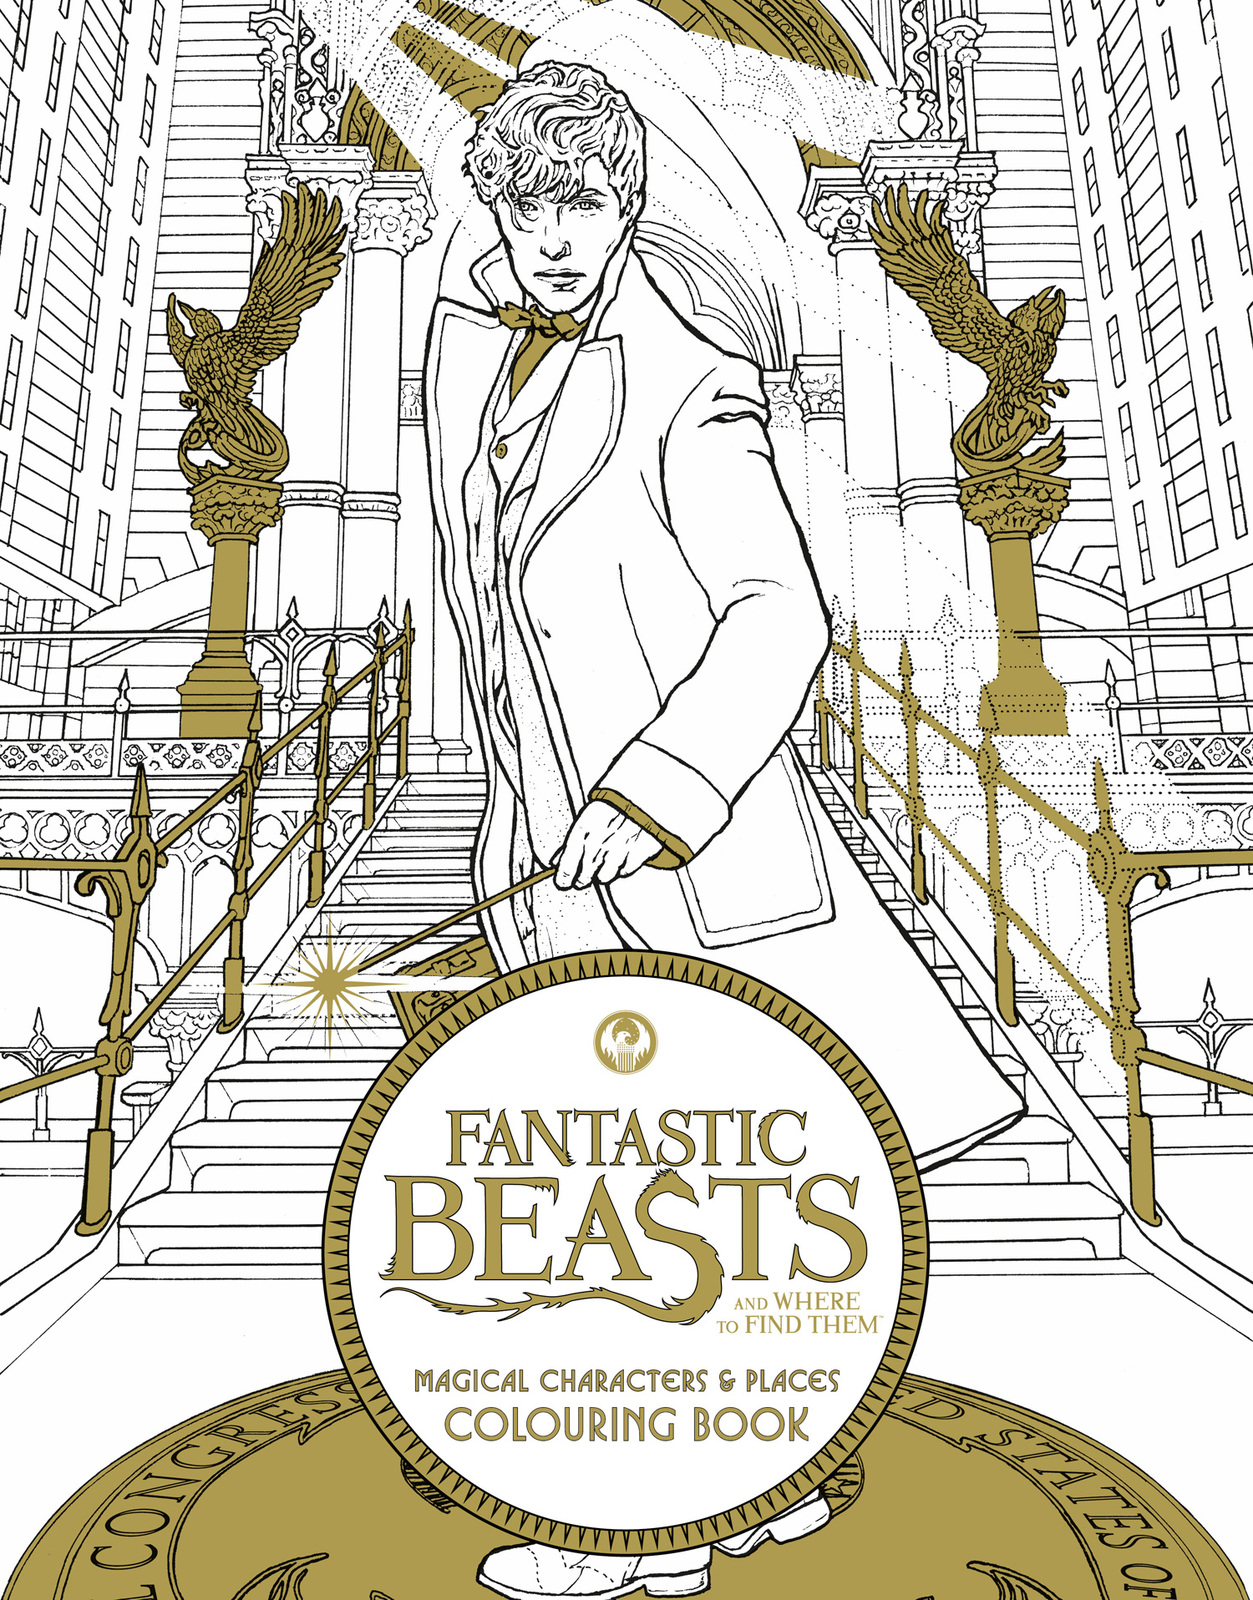 Fantastic Beasts and Where to Find Them: Magical Characters and Places Colouring Book by HarperCollins Publishers image